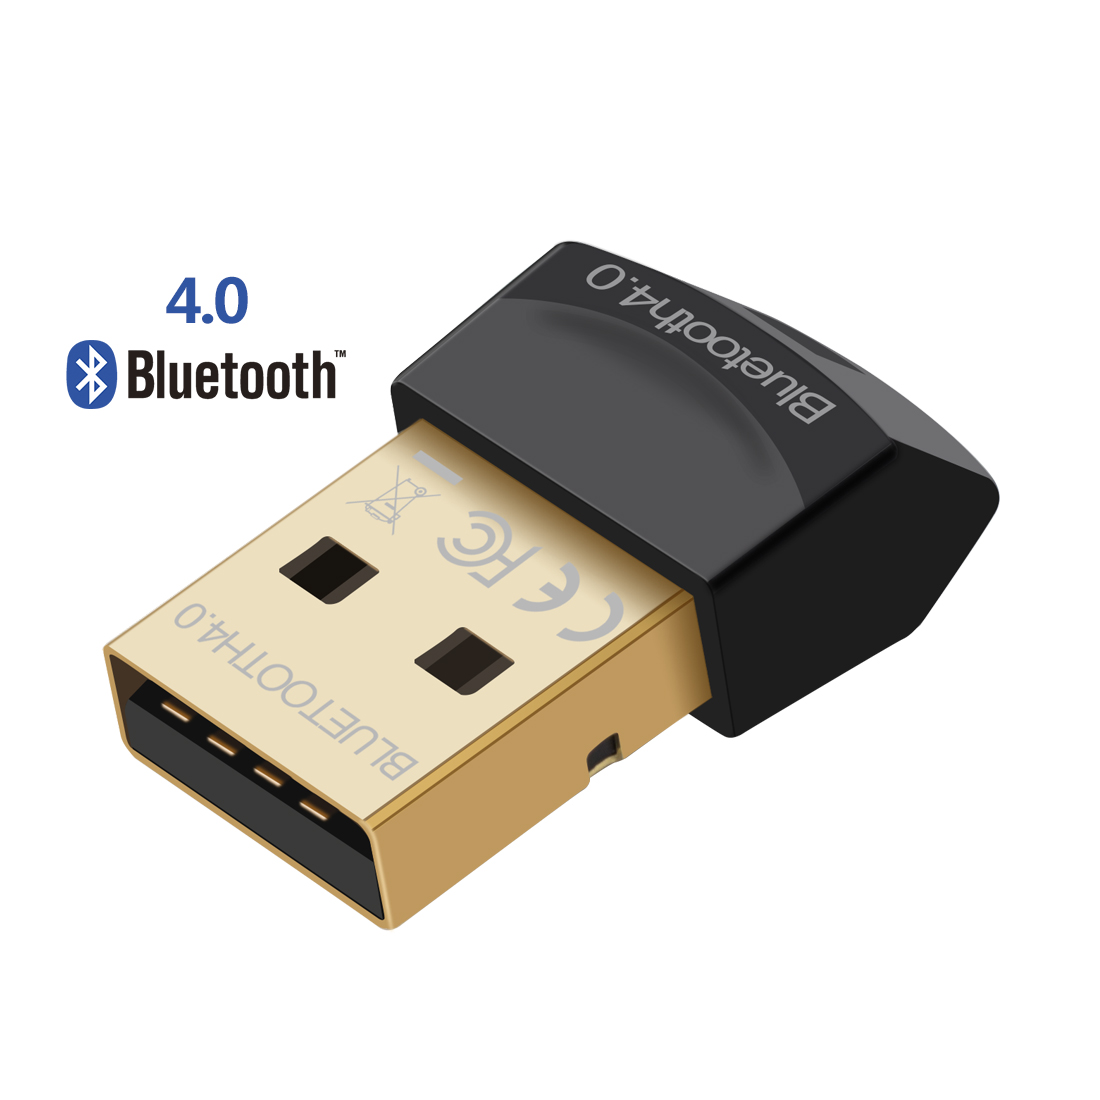 Mini USB Bluetooth-adapter V4.0 CSR Draadloze Bluetooth Dongle 4.0 zender voor computer PC Laptop Windows 10 8 7 Vista XP